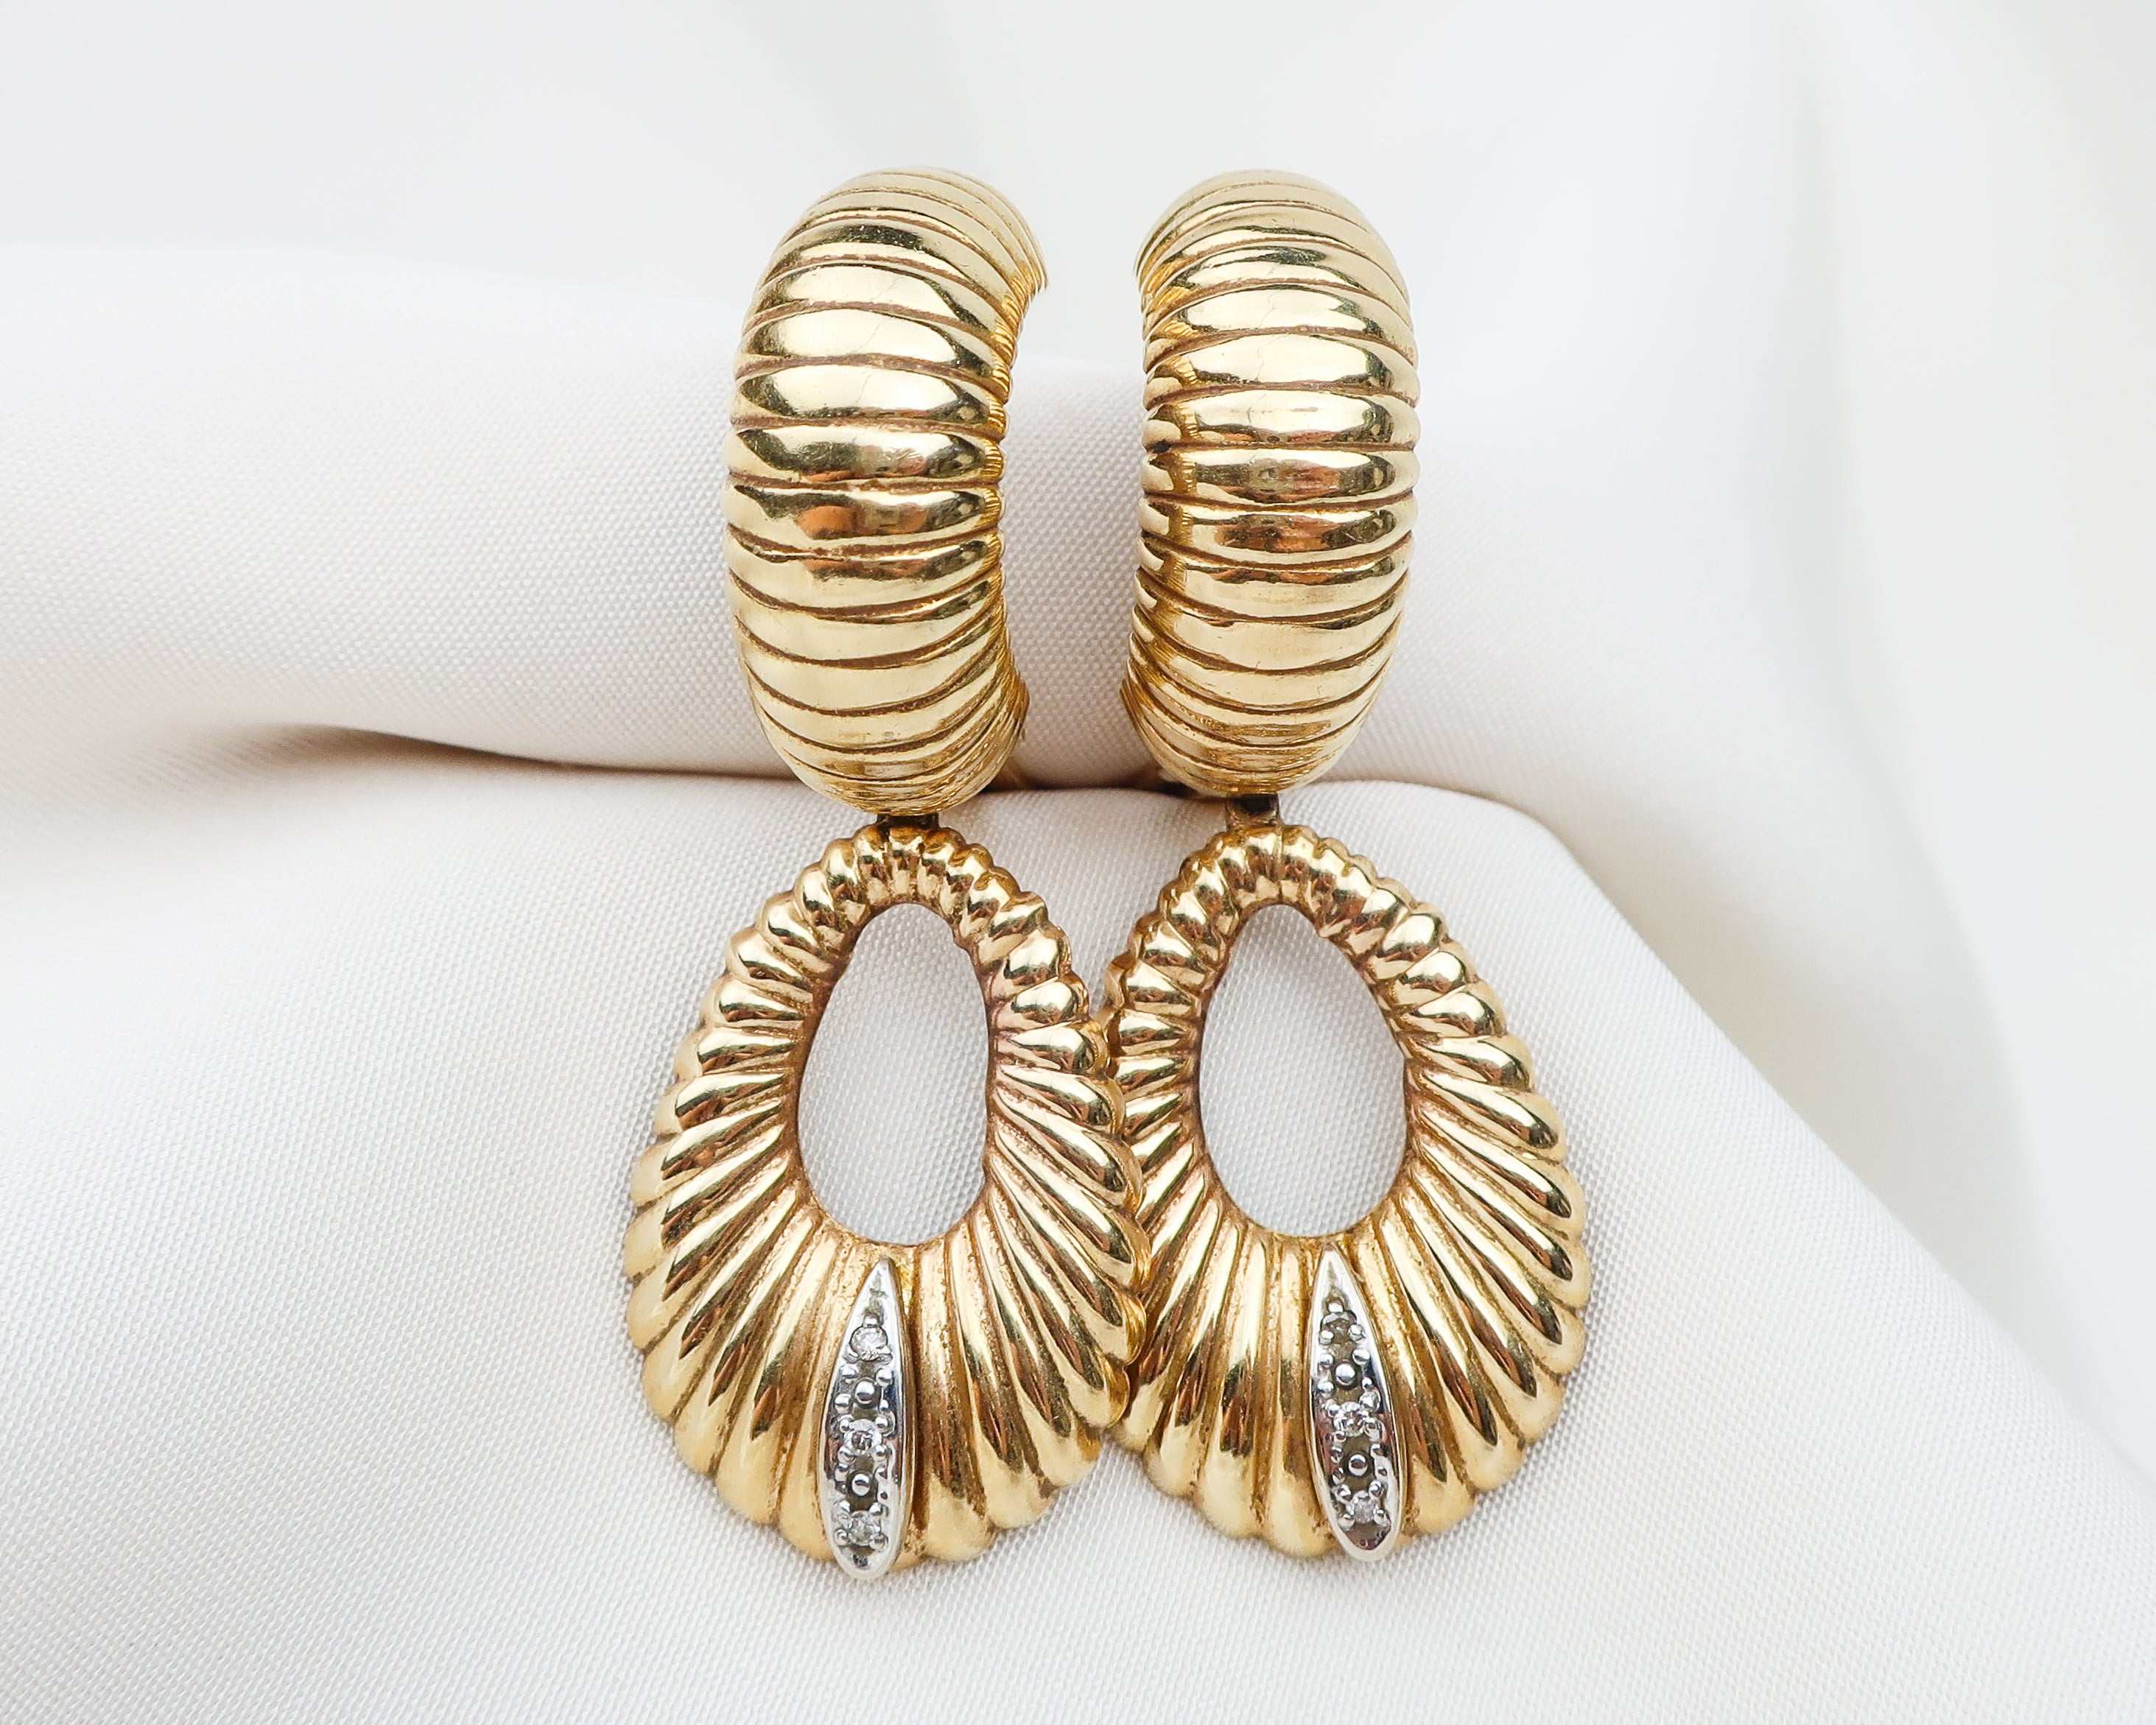 Midcentury Hoop Earrings with Diamond Accents